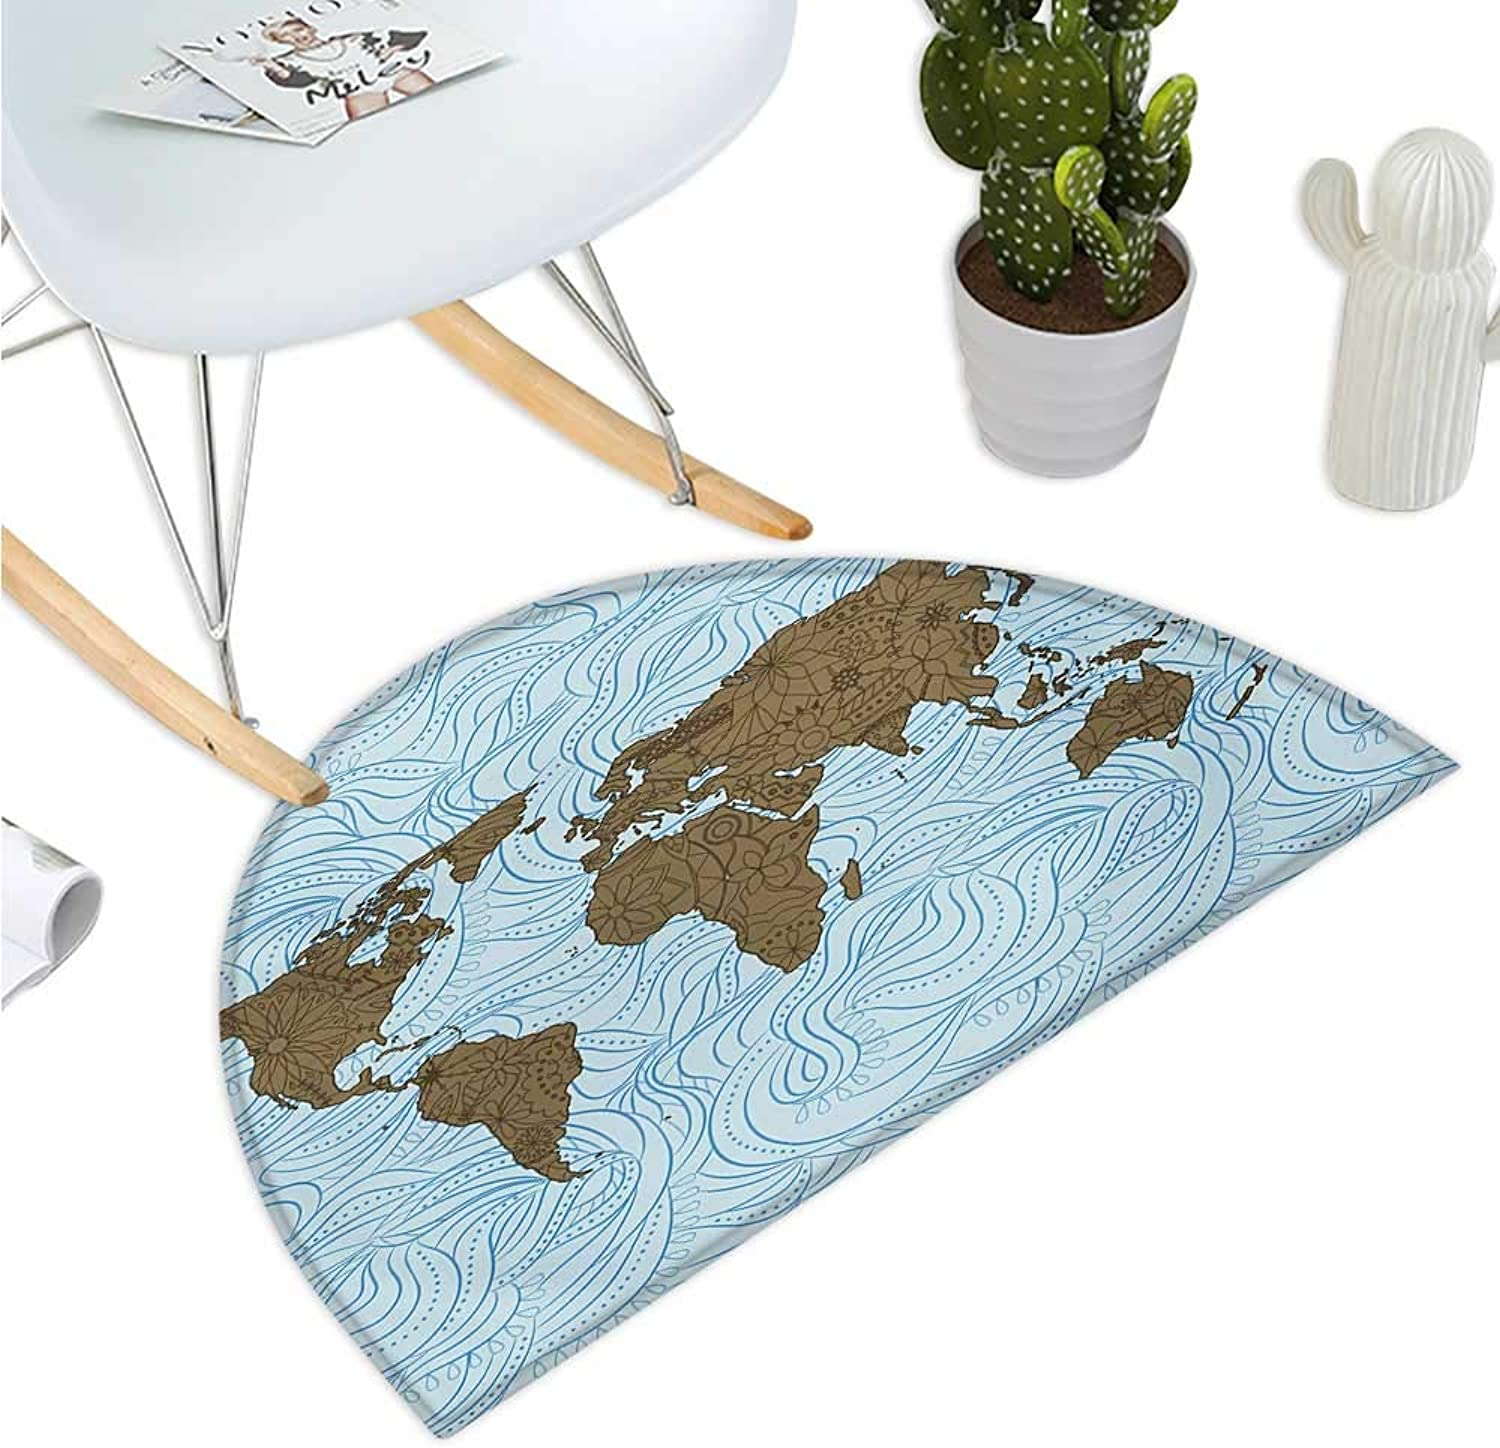 Floral World Map Half Round Door mats World Map with Wavy Ocean Lines Flower Continent Icons Artful Image Bathroom Mat H 43.3  xD 64.9  Cocoa Pale bluee